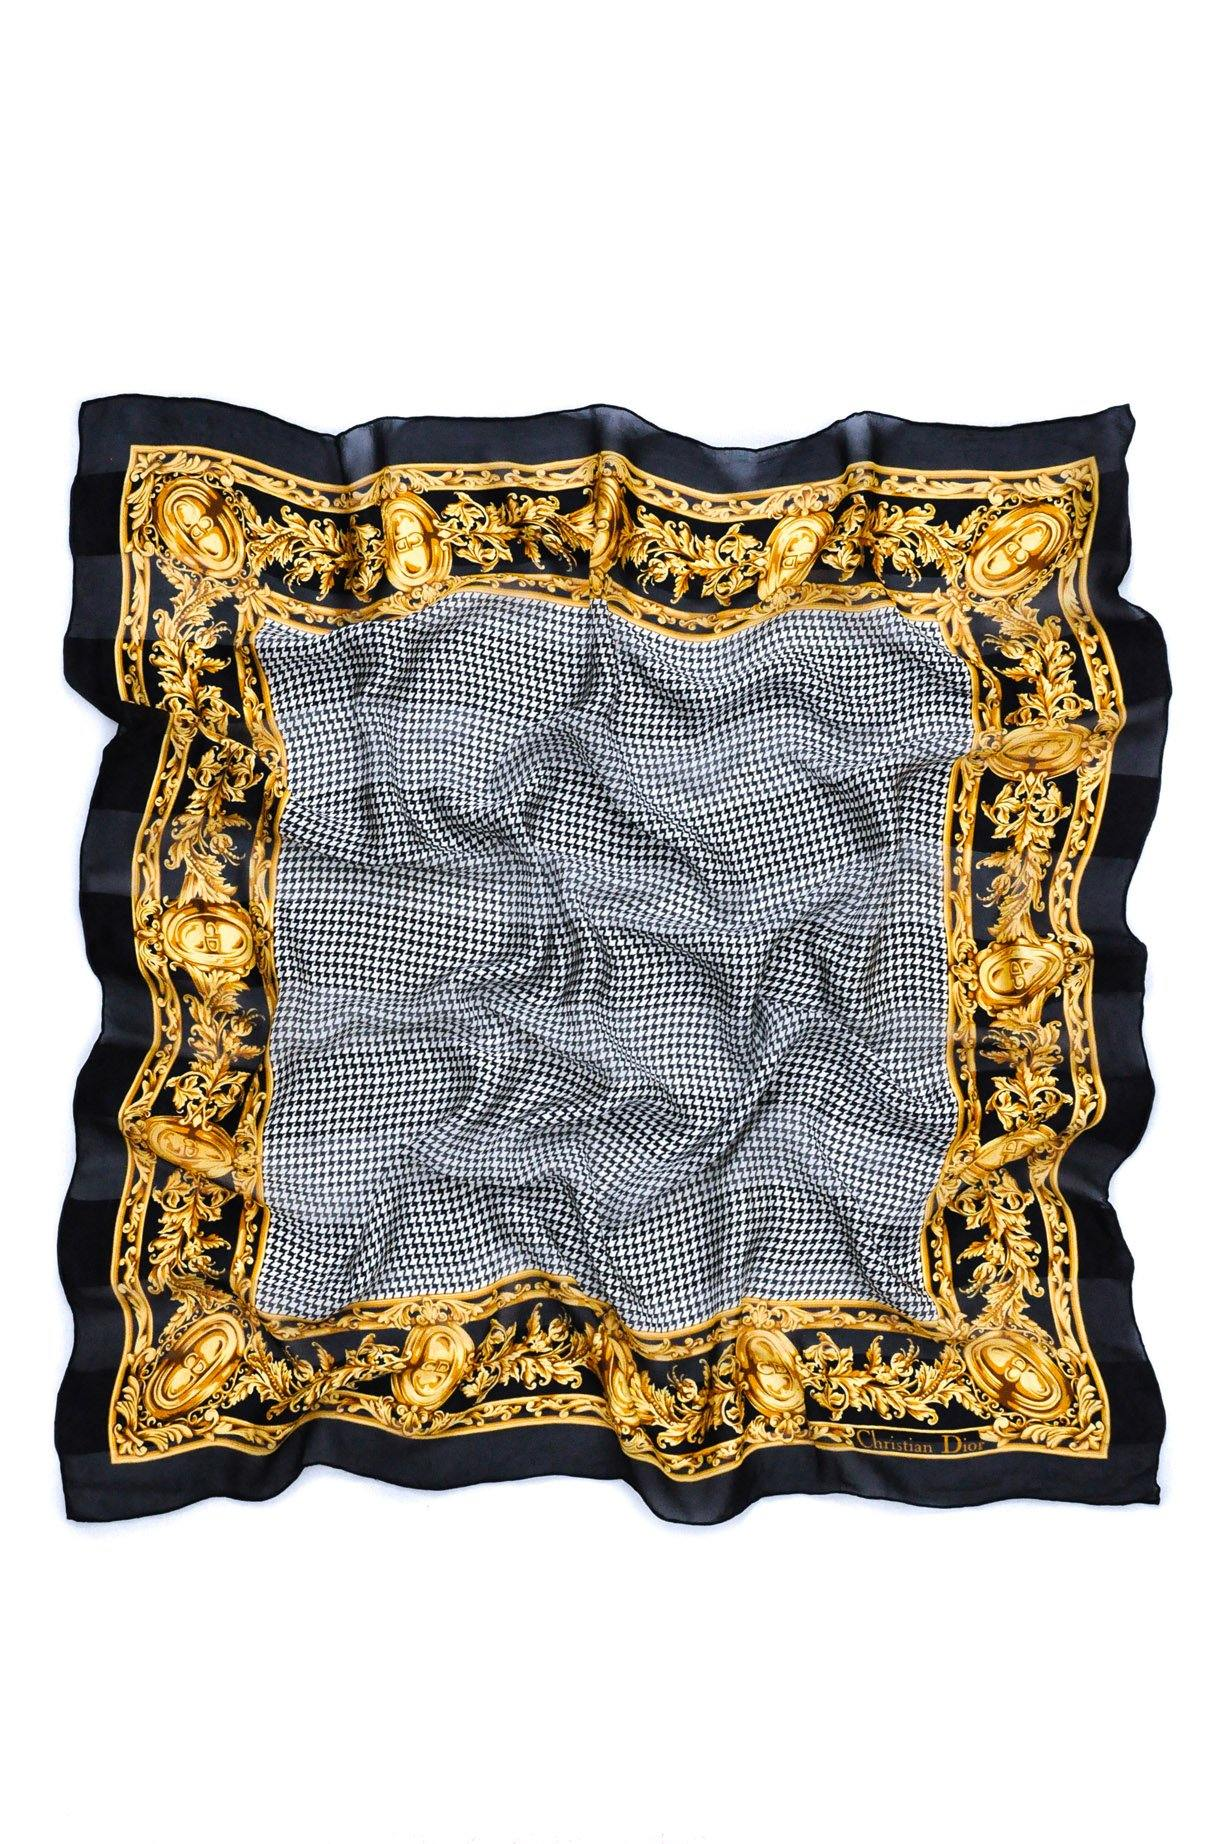 Christian Dior Houndstooth Scarf